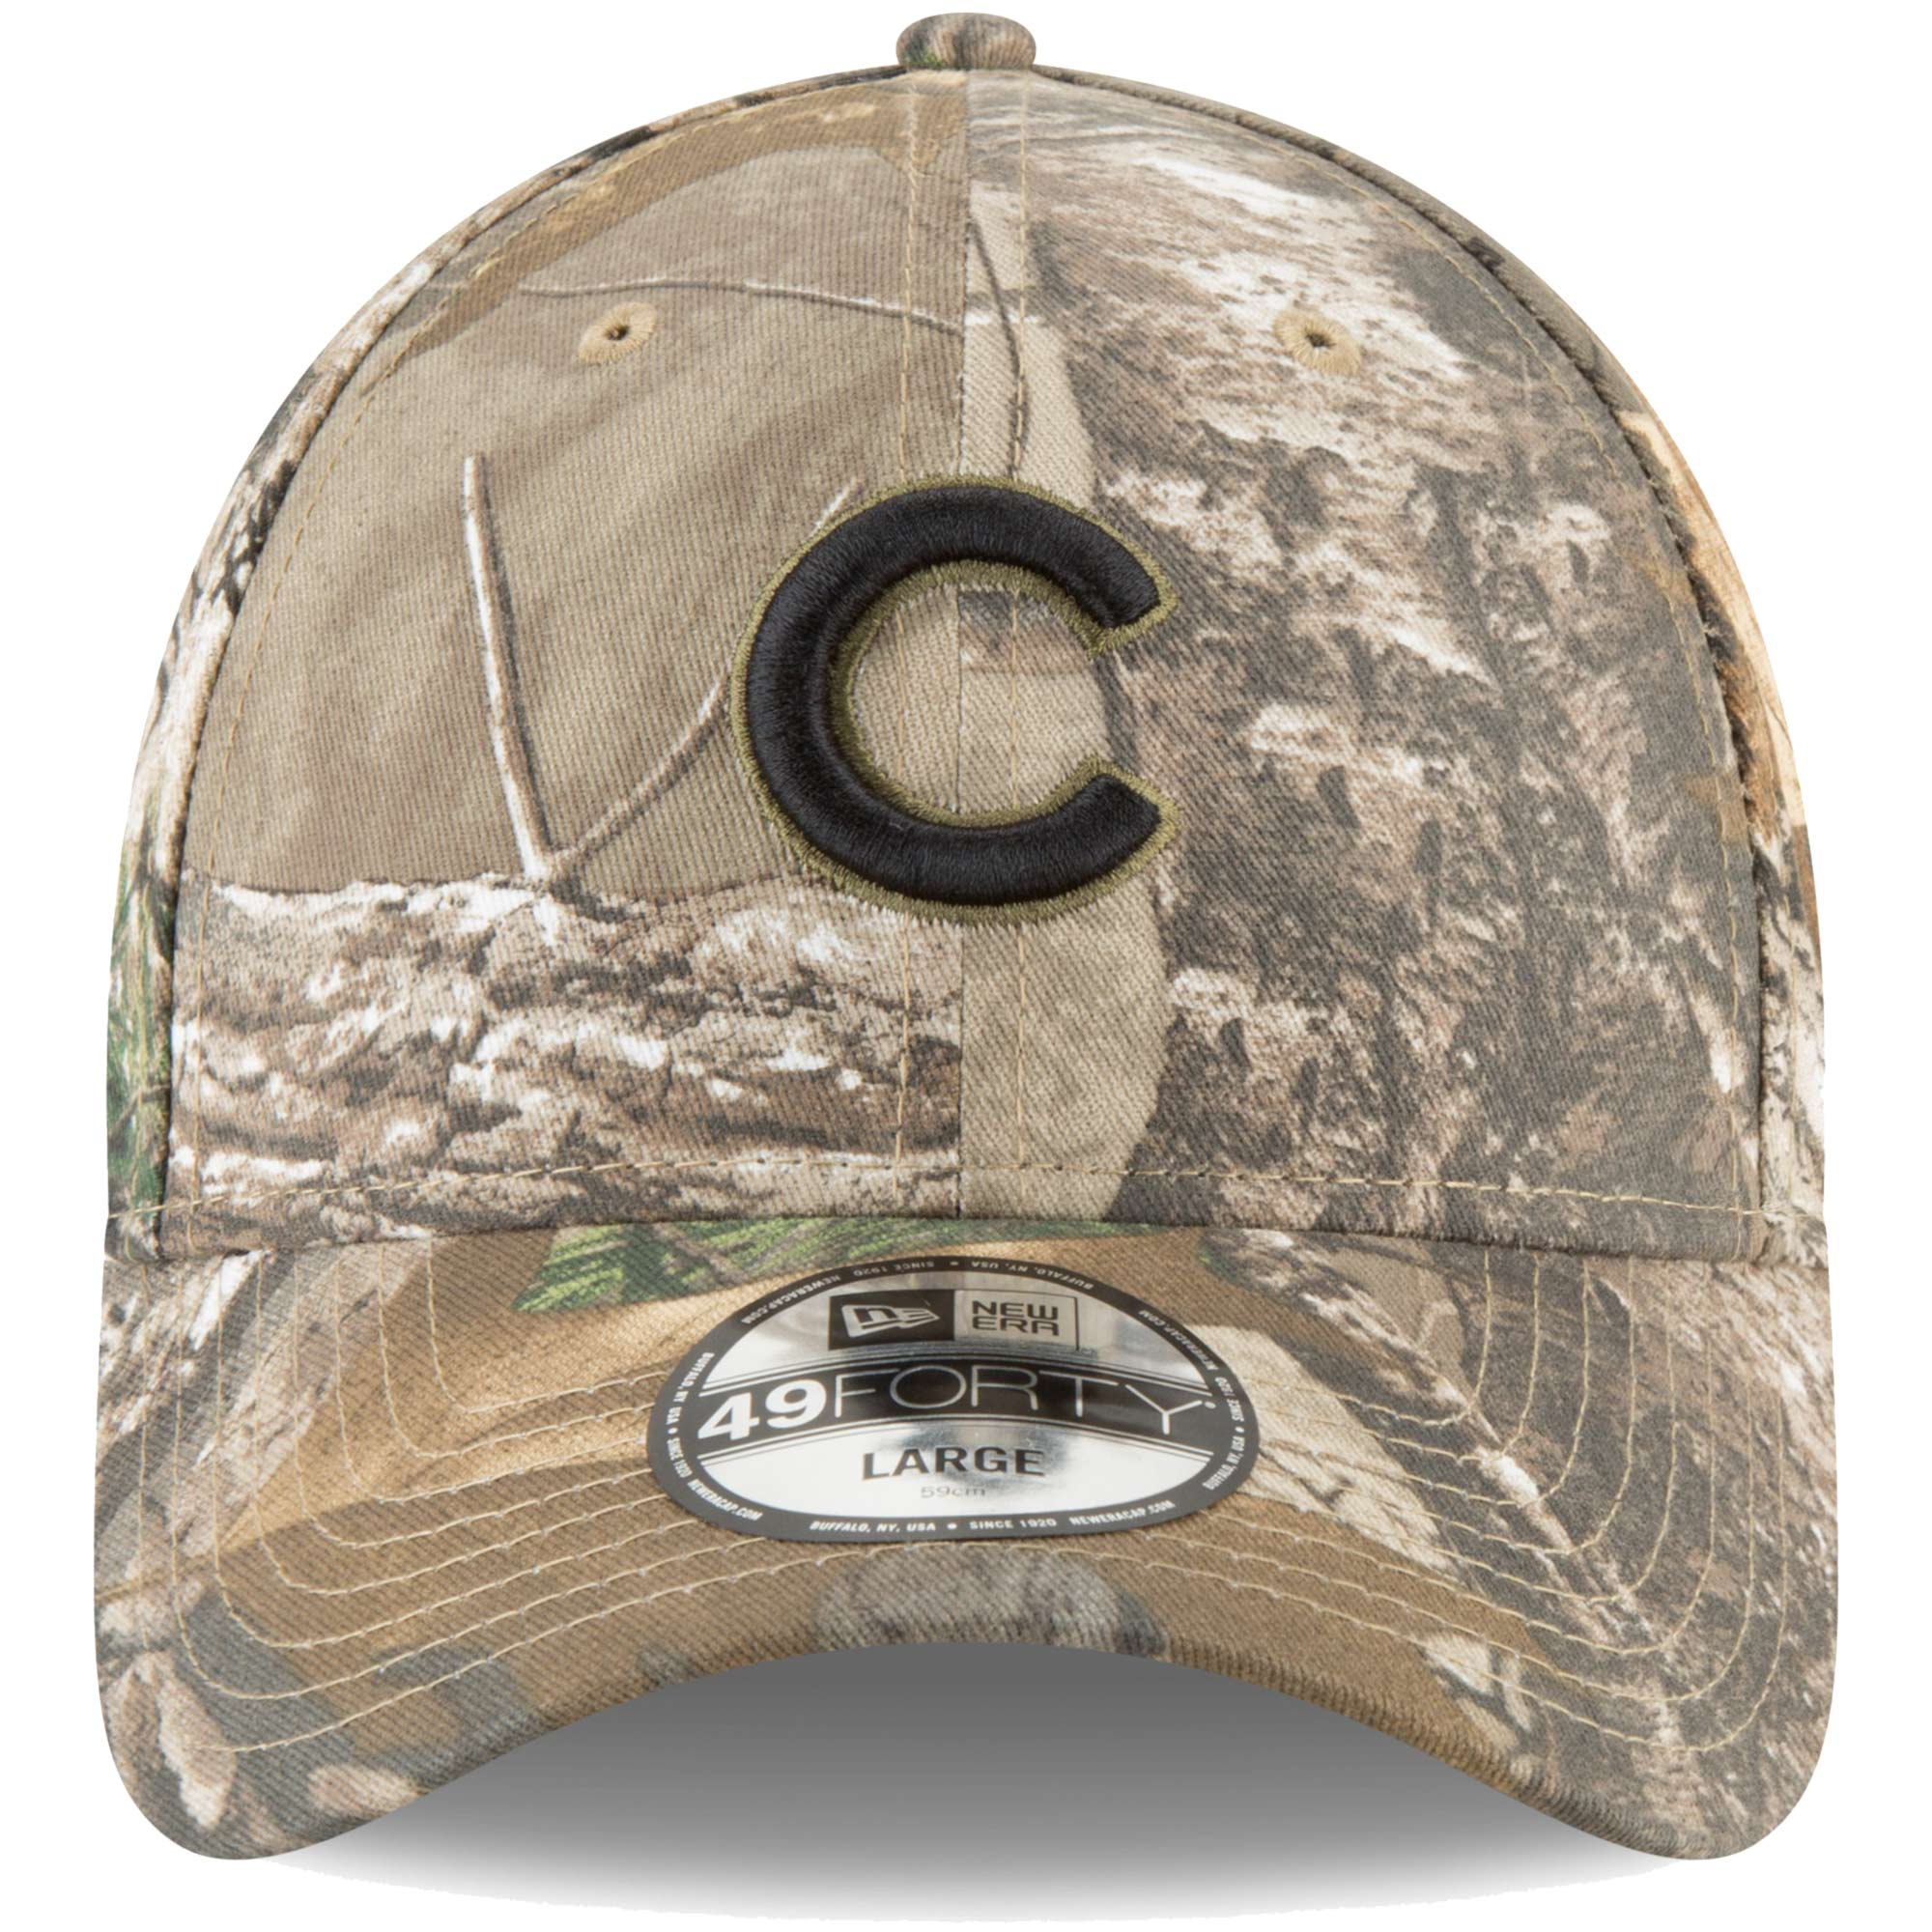 1357908d2dd Chicago Cubs New Era Realtree 49FORTY Fitted Hat - Camo - Walmart.com